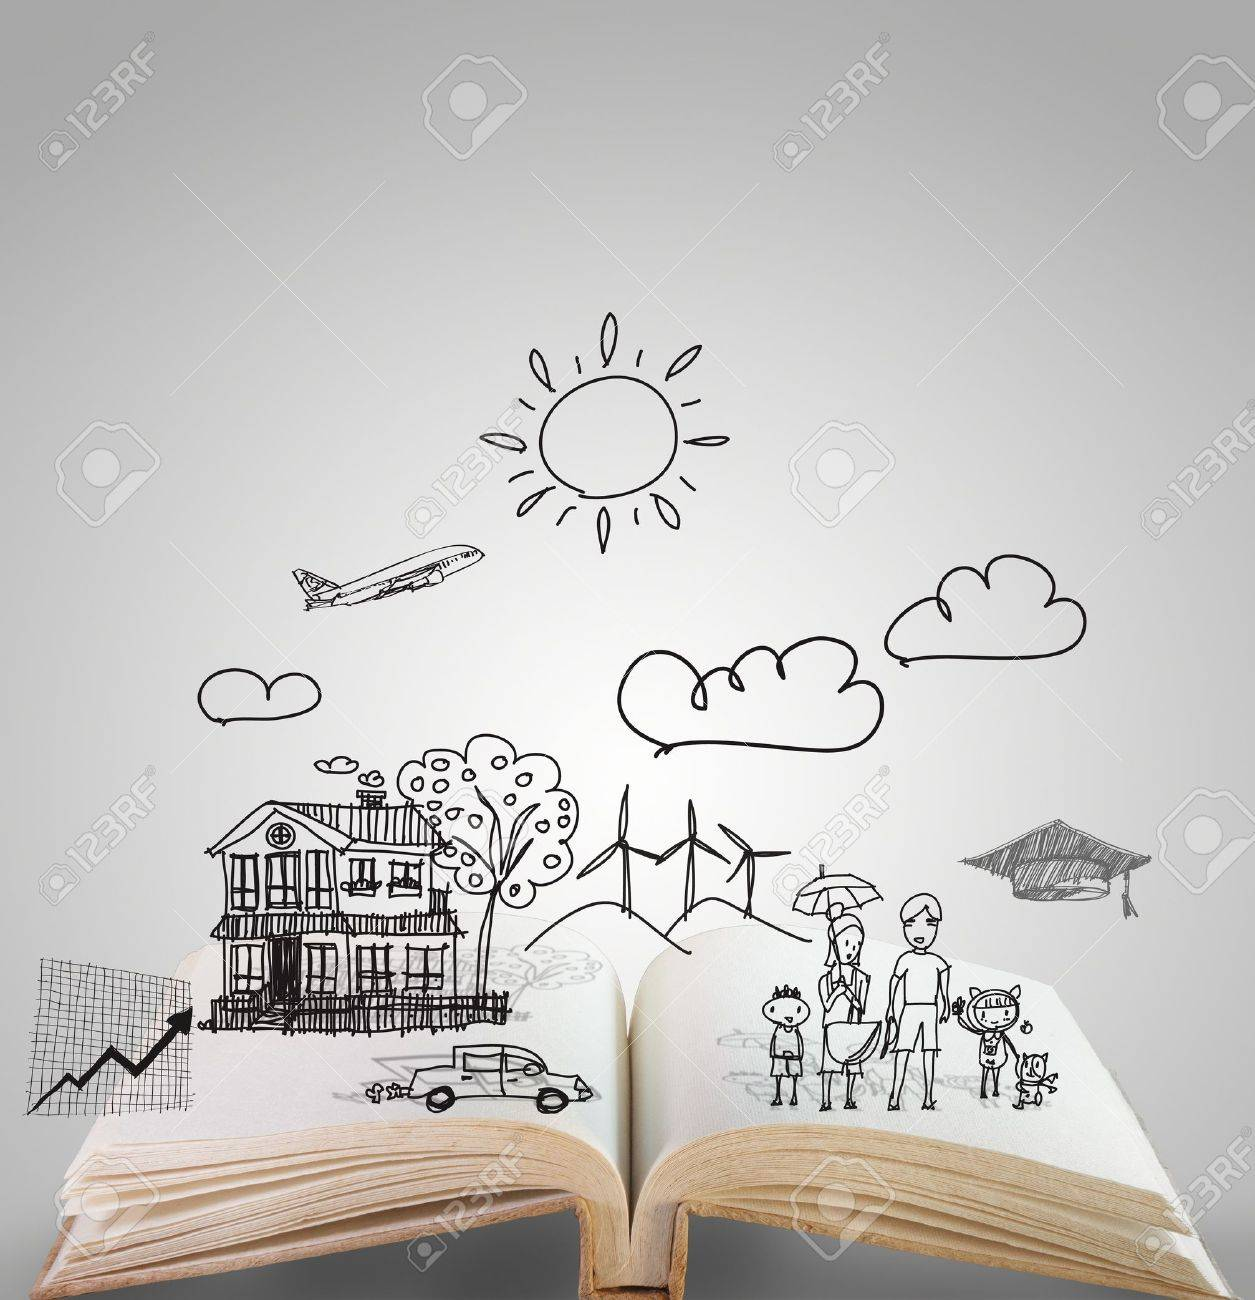 open book of family story - 16096414